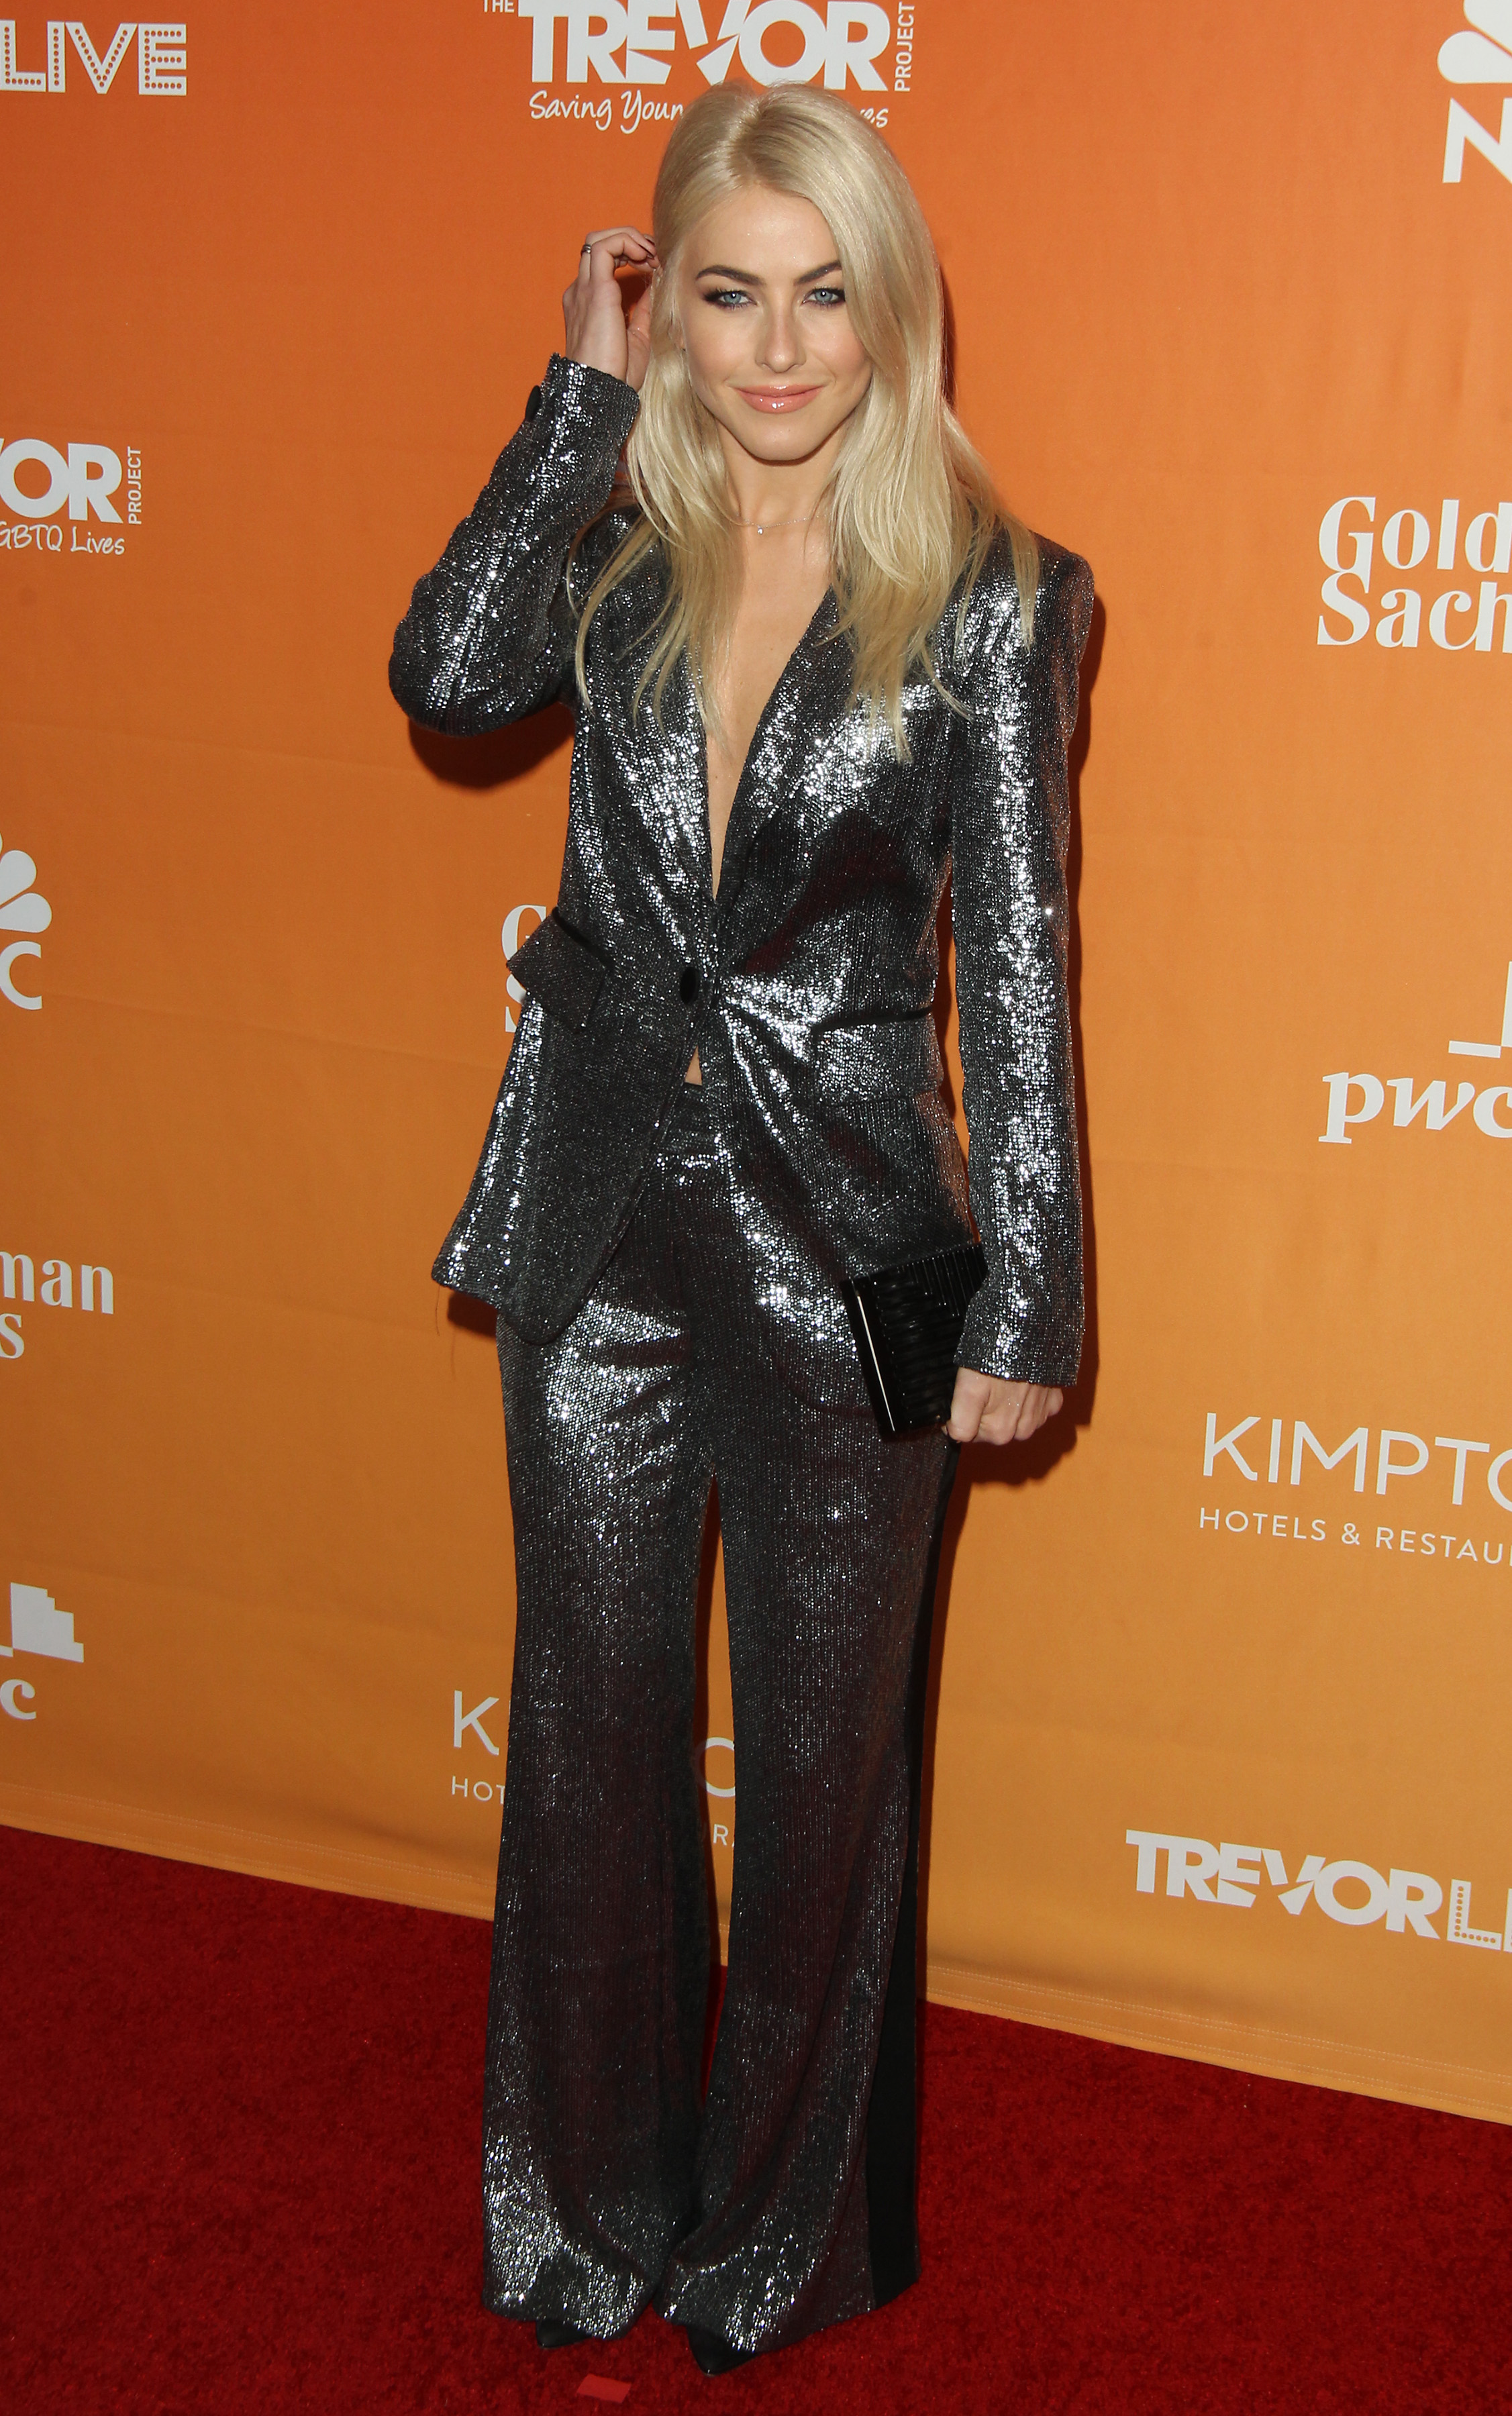 TrevorLIVE L.A. held at The Beverly Hilton Hotel in Beverly Hills, California.                                    Featuring: Julianne Hough                  Where: Los Angeles, California, United States                  When: 03 Dec 2017                  Credit: Adriana M. Barraza/WENN.com